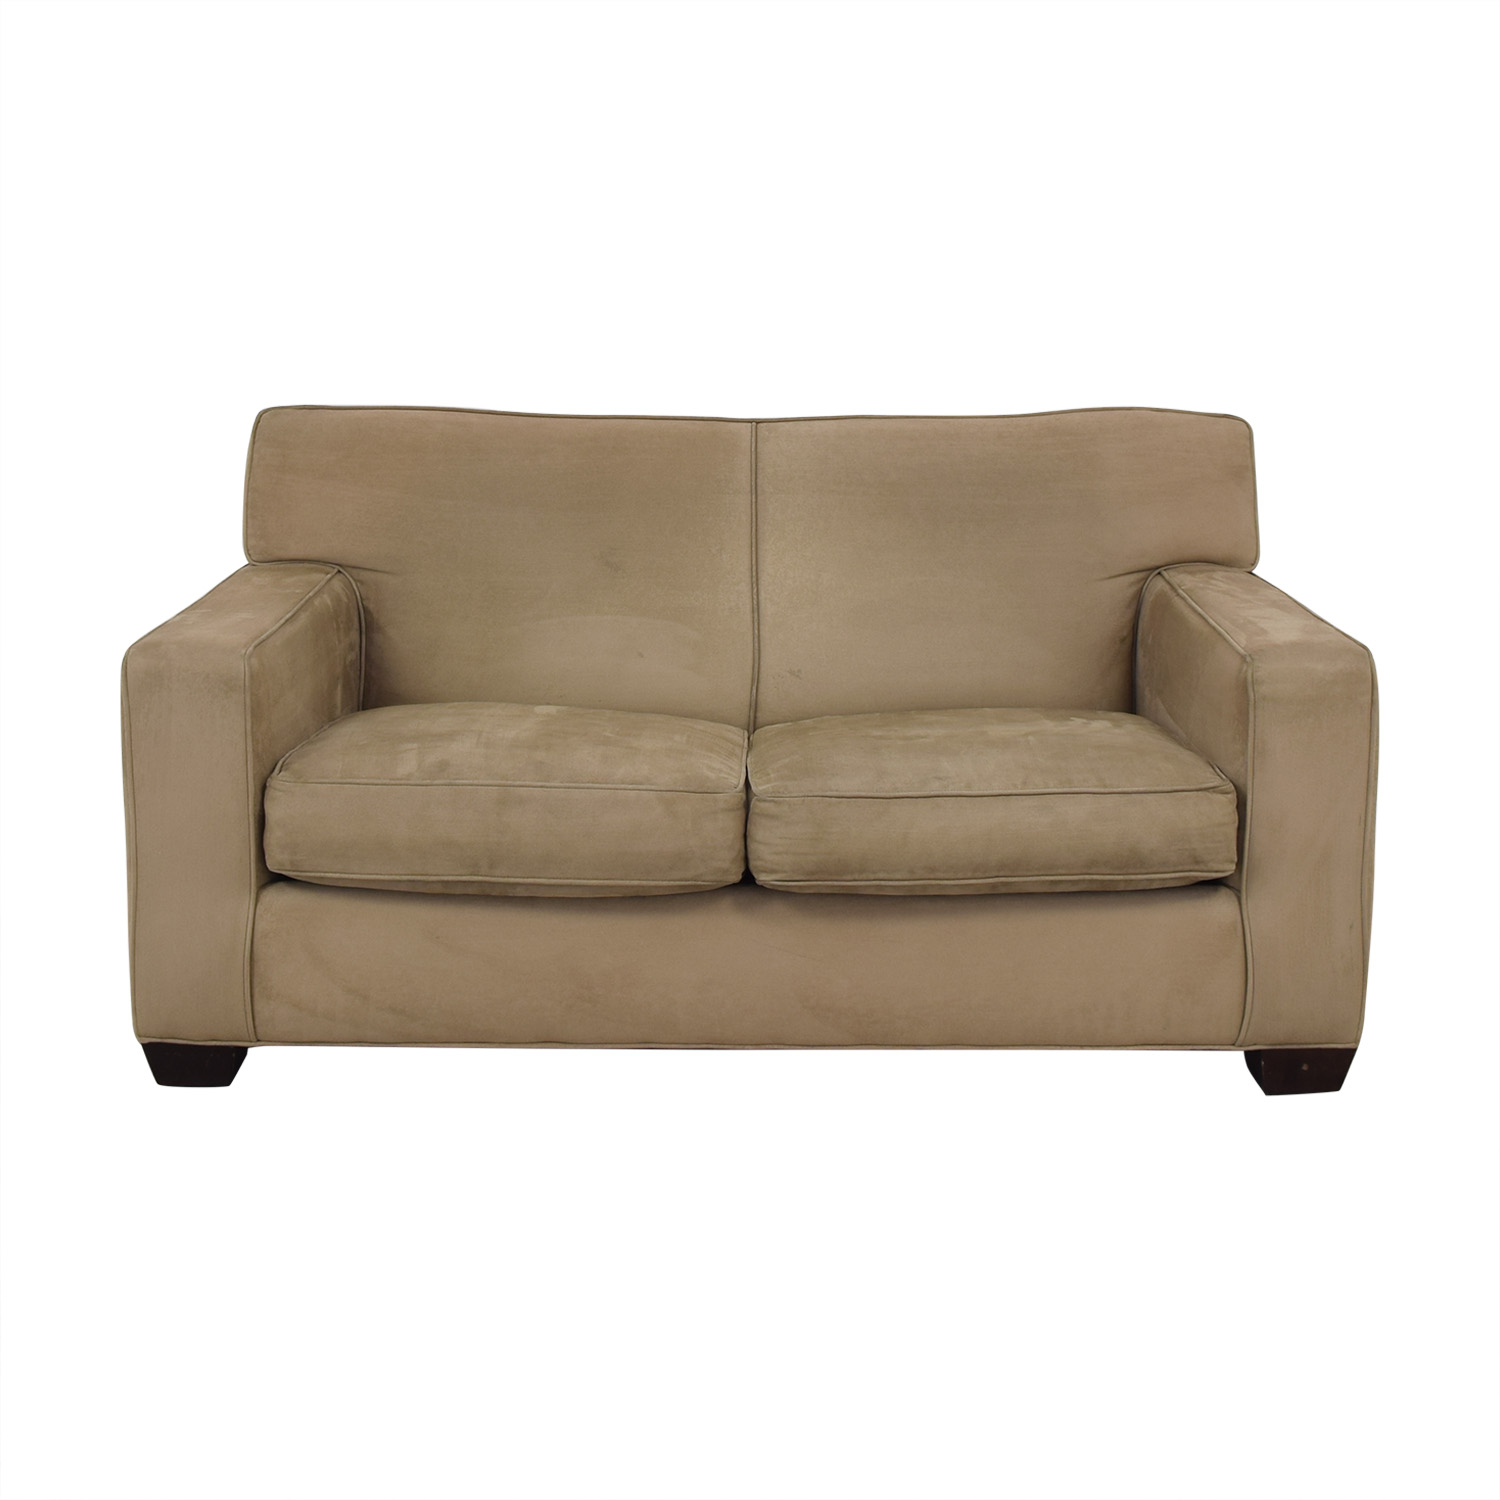 Crate & Barrel Crate & Barrel Loveseat Sofas